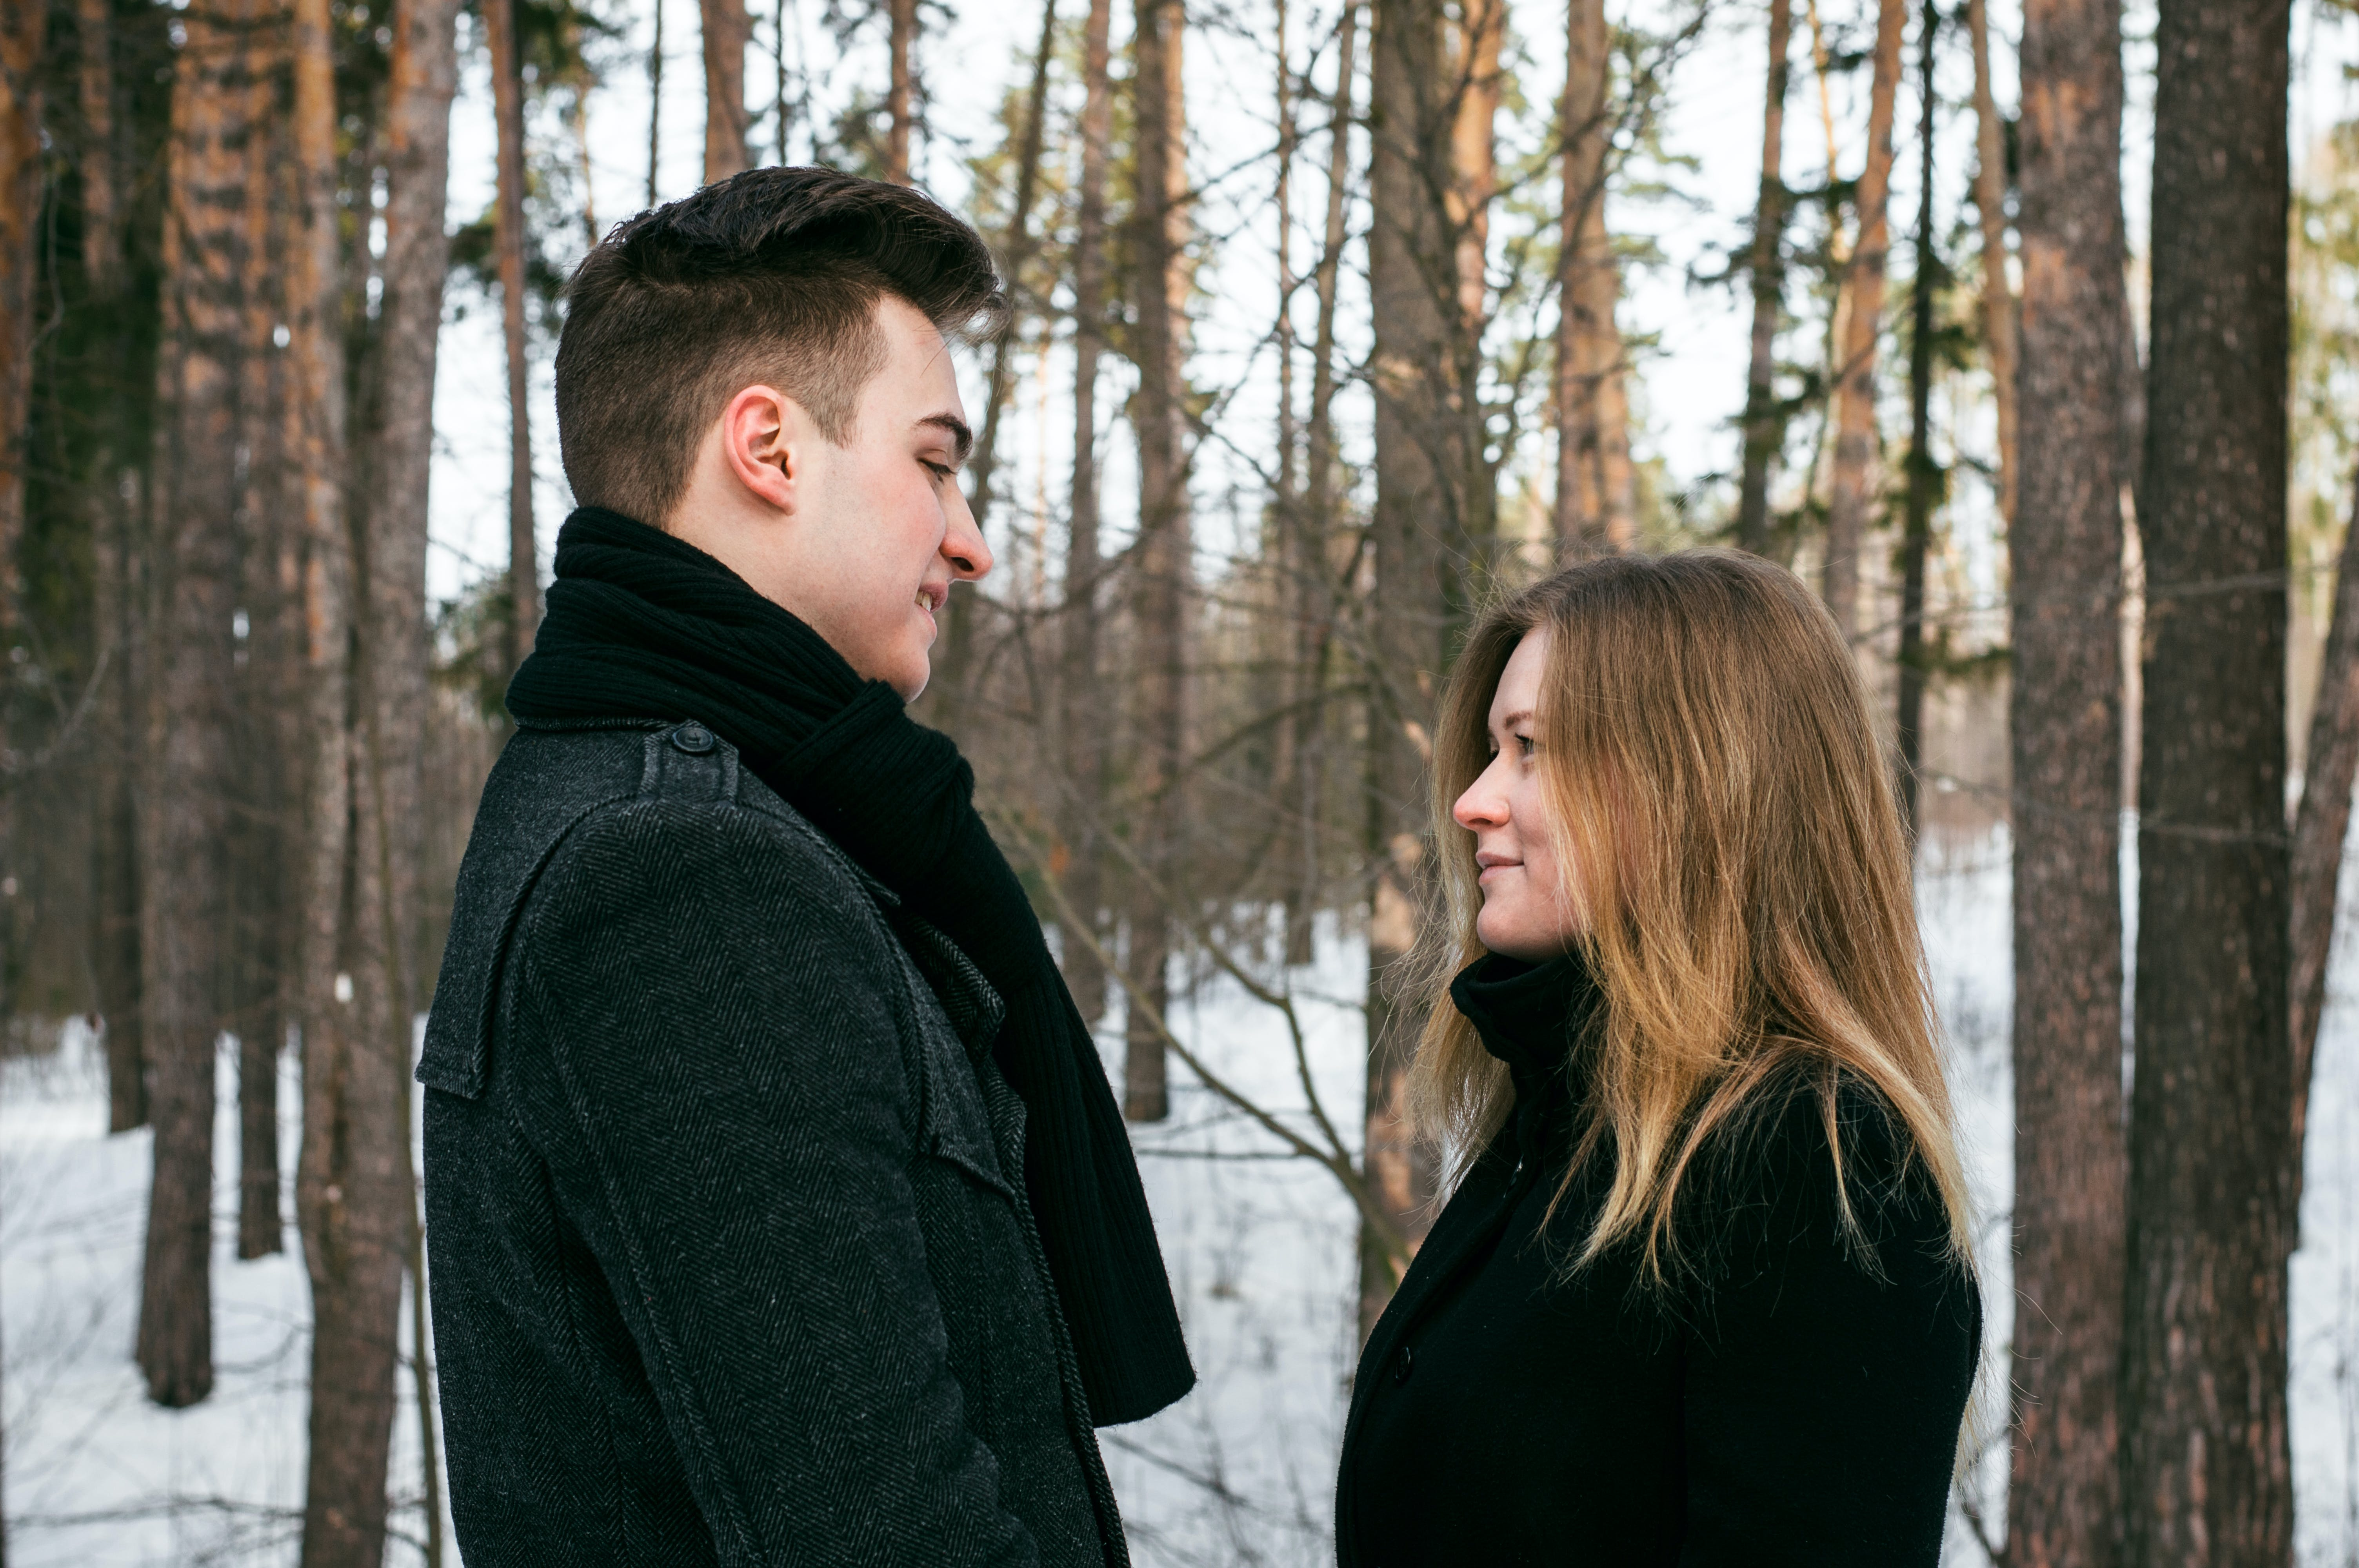 Man and Woman Wearing Black Coats Standing Near Snow-covered Trees